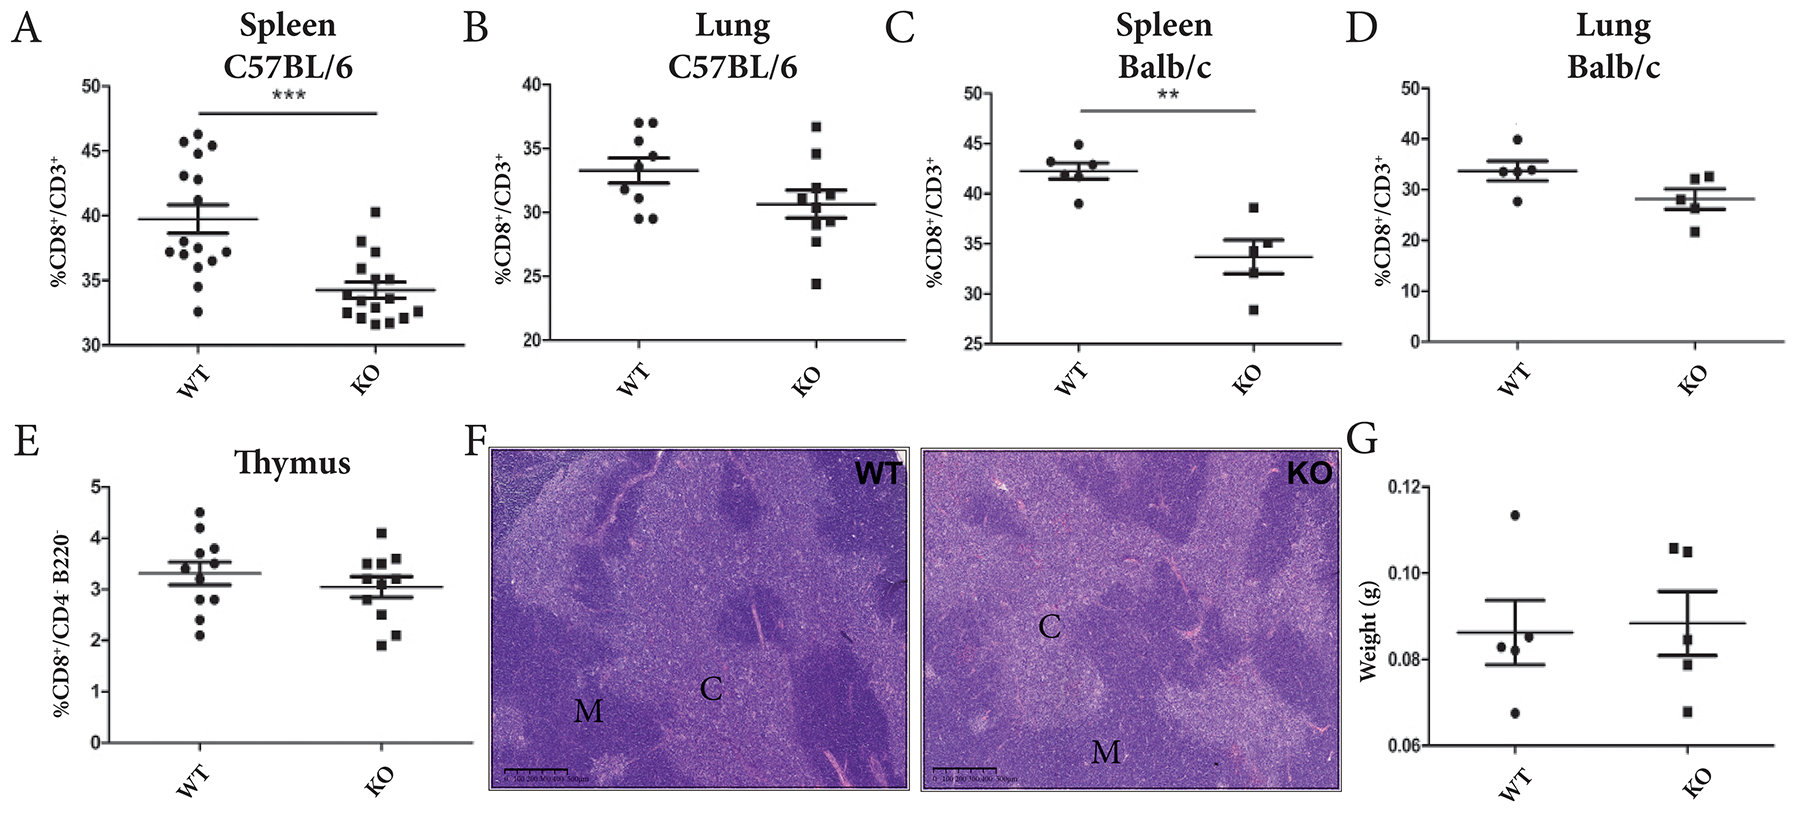 ADAM28 deficiency reduces CD8+ T cell mobilization to splenic and pulmonary tissues in tumor-free mice.